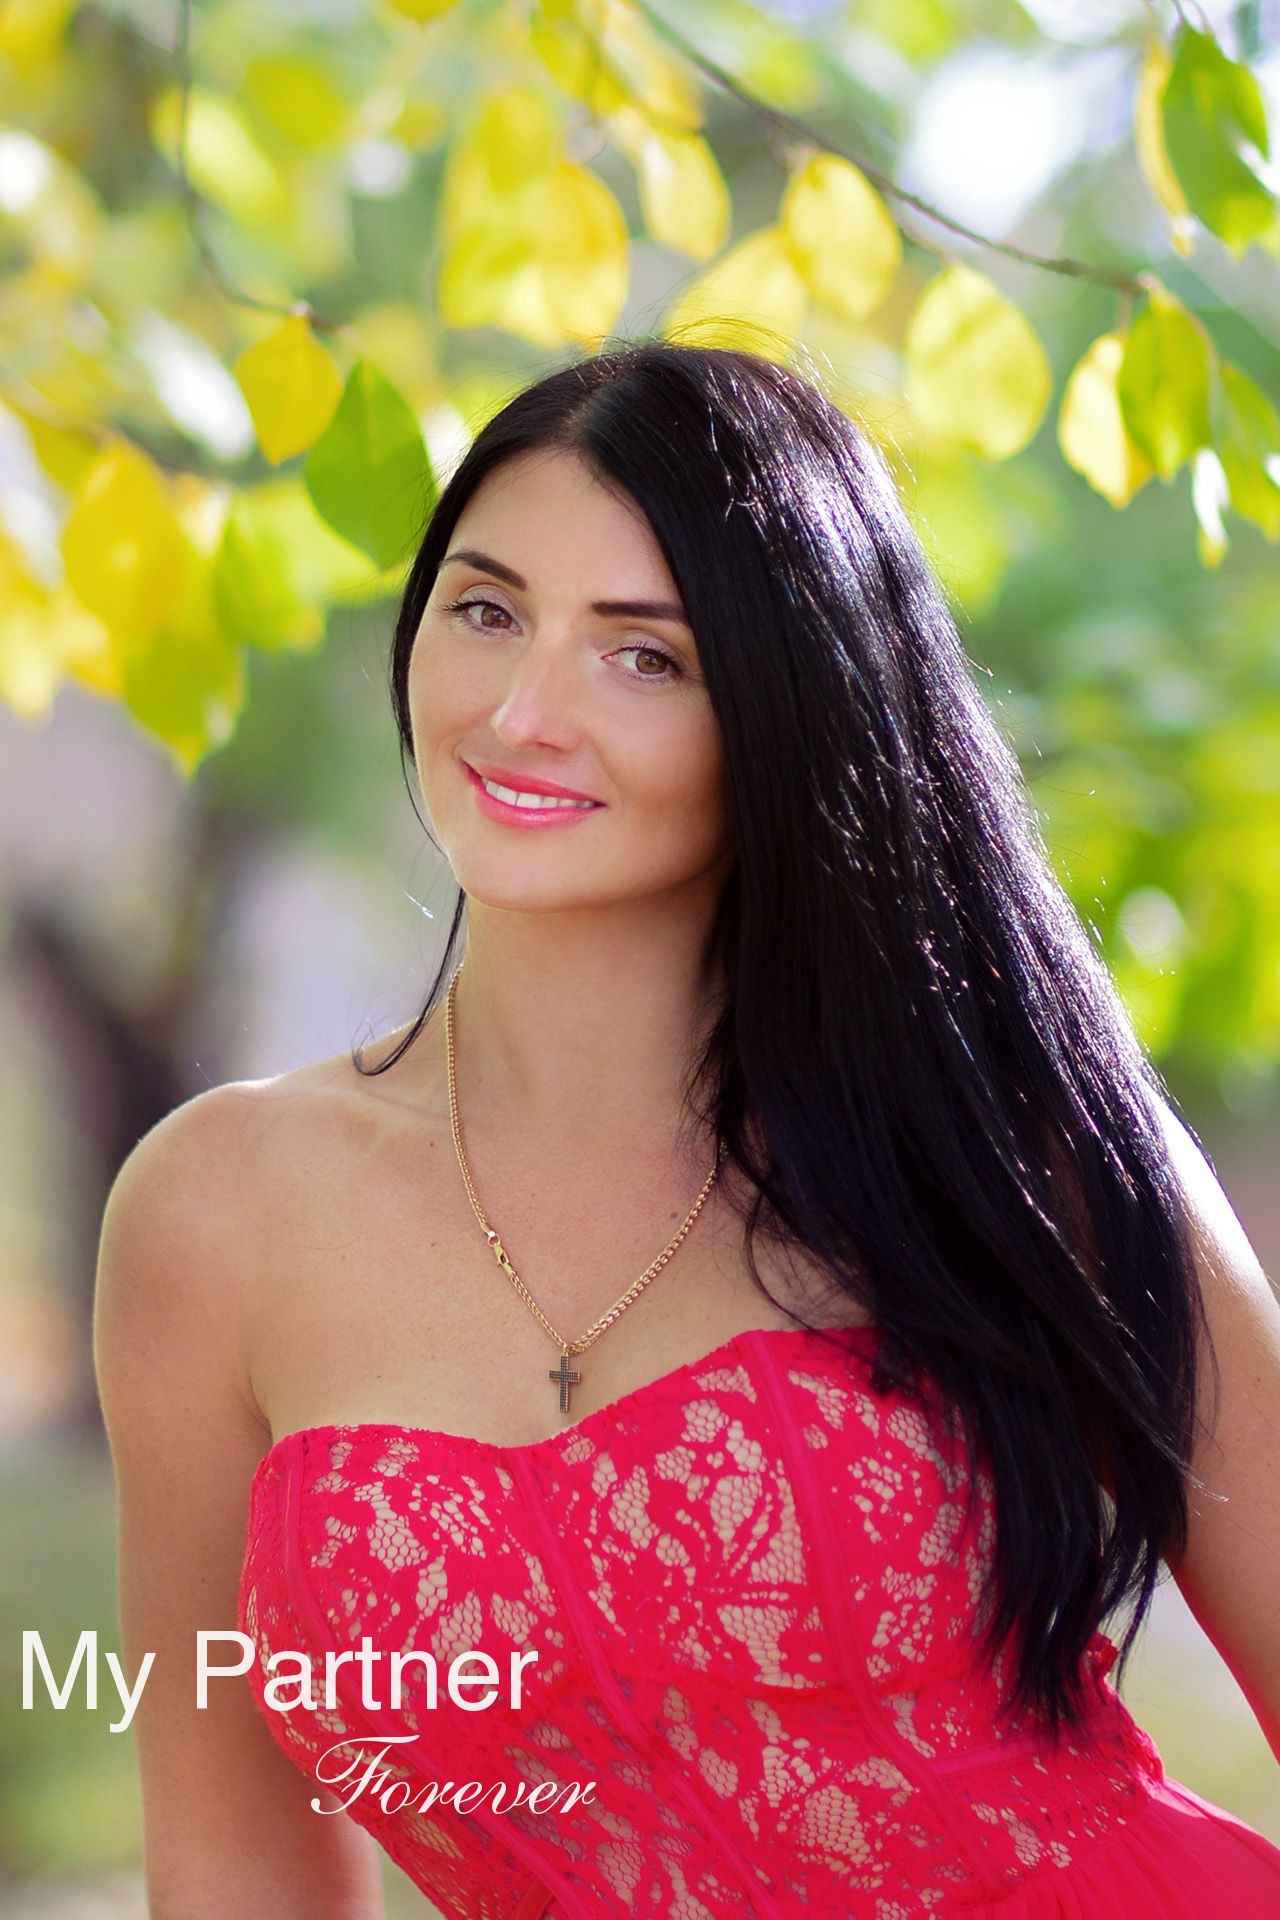 Ukrainian Girls Matchmaking - Meet Larisa from Kharkov, Ukraine